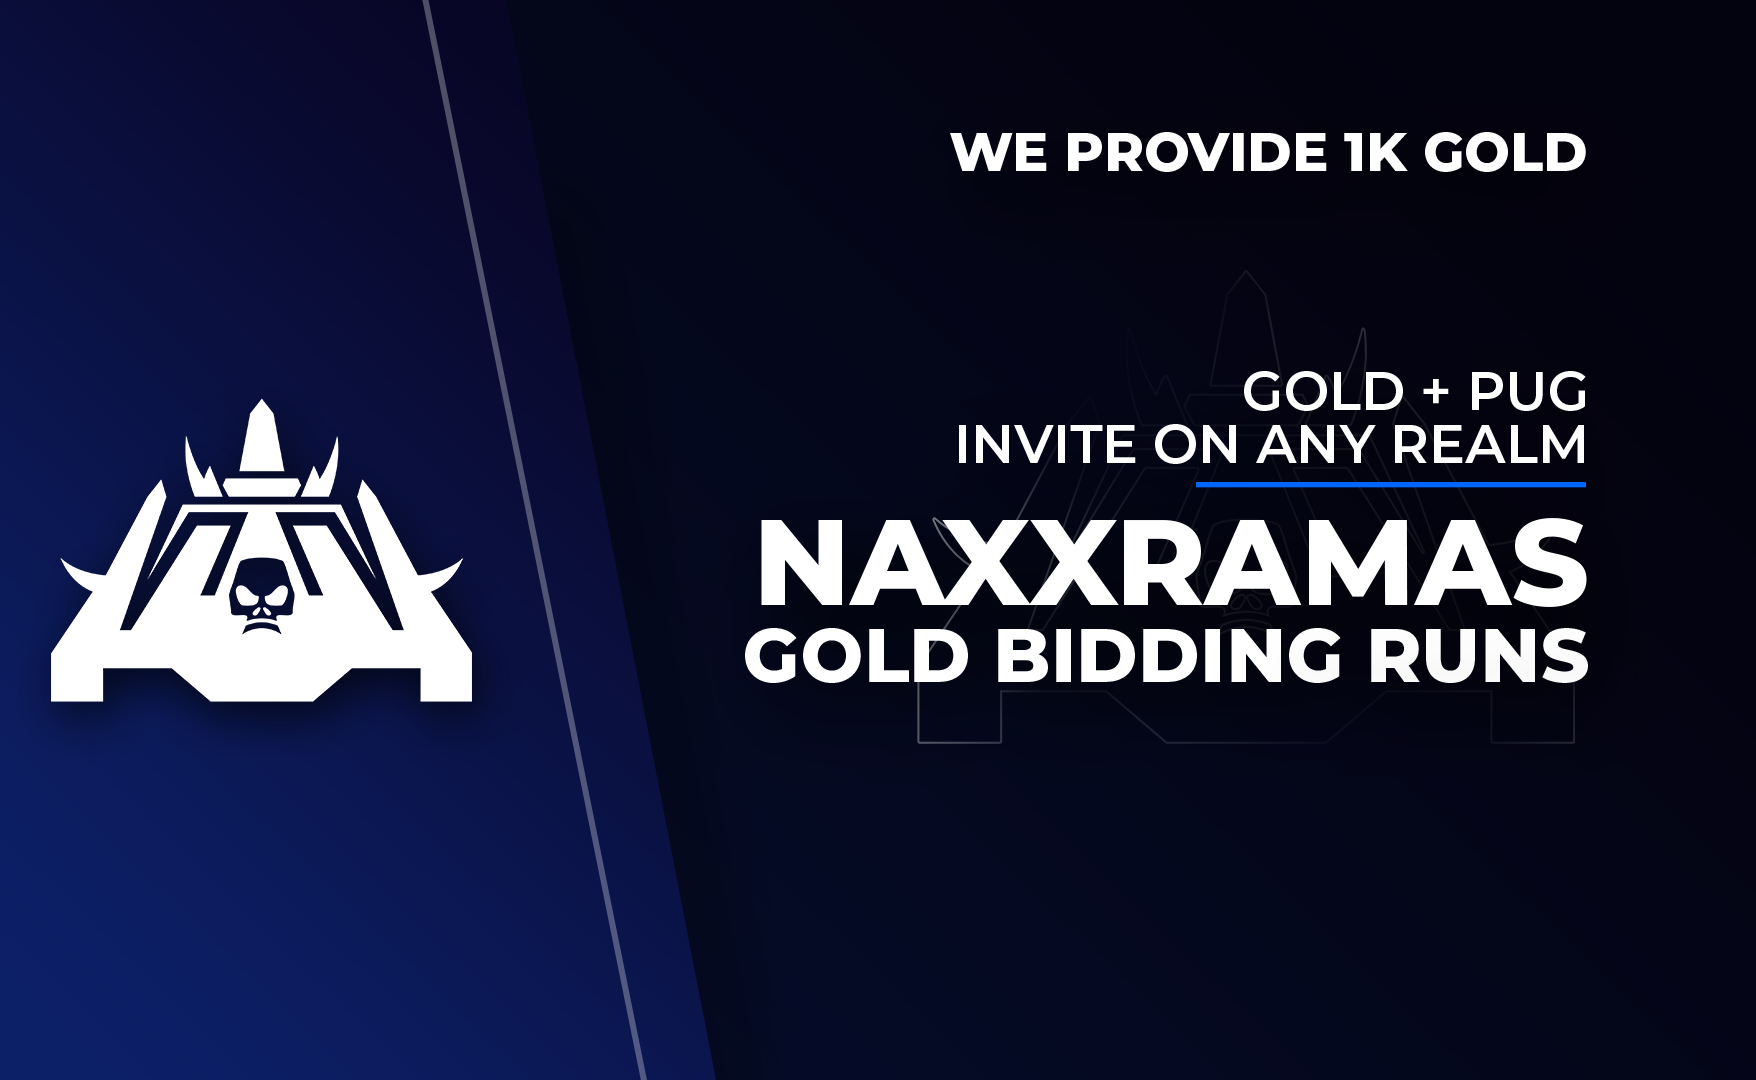 Naxxramas Gold Bid Run - 1000 Gold